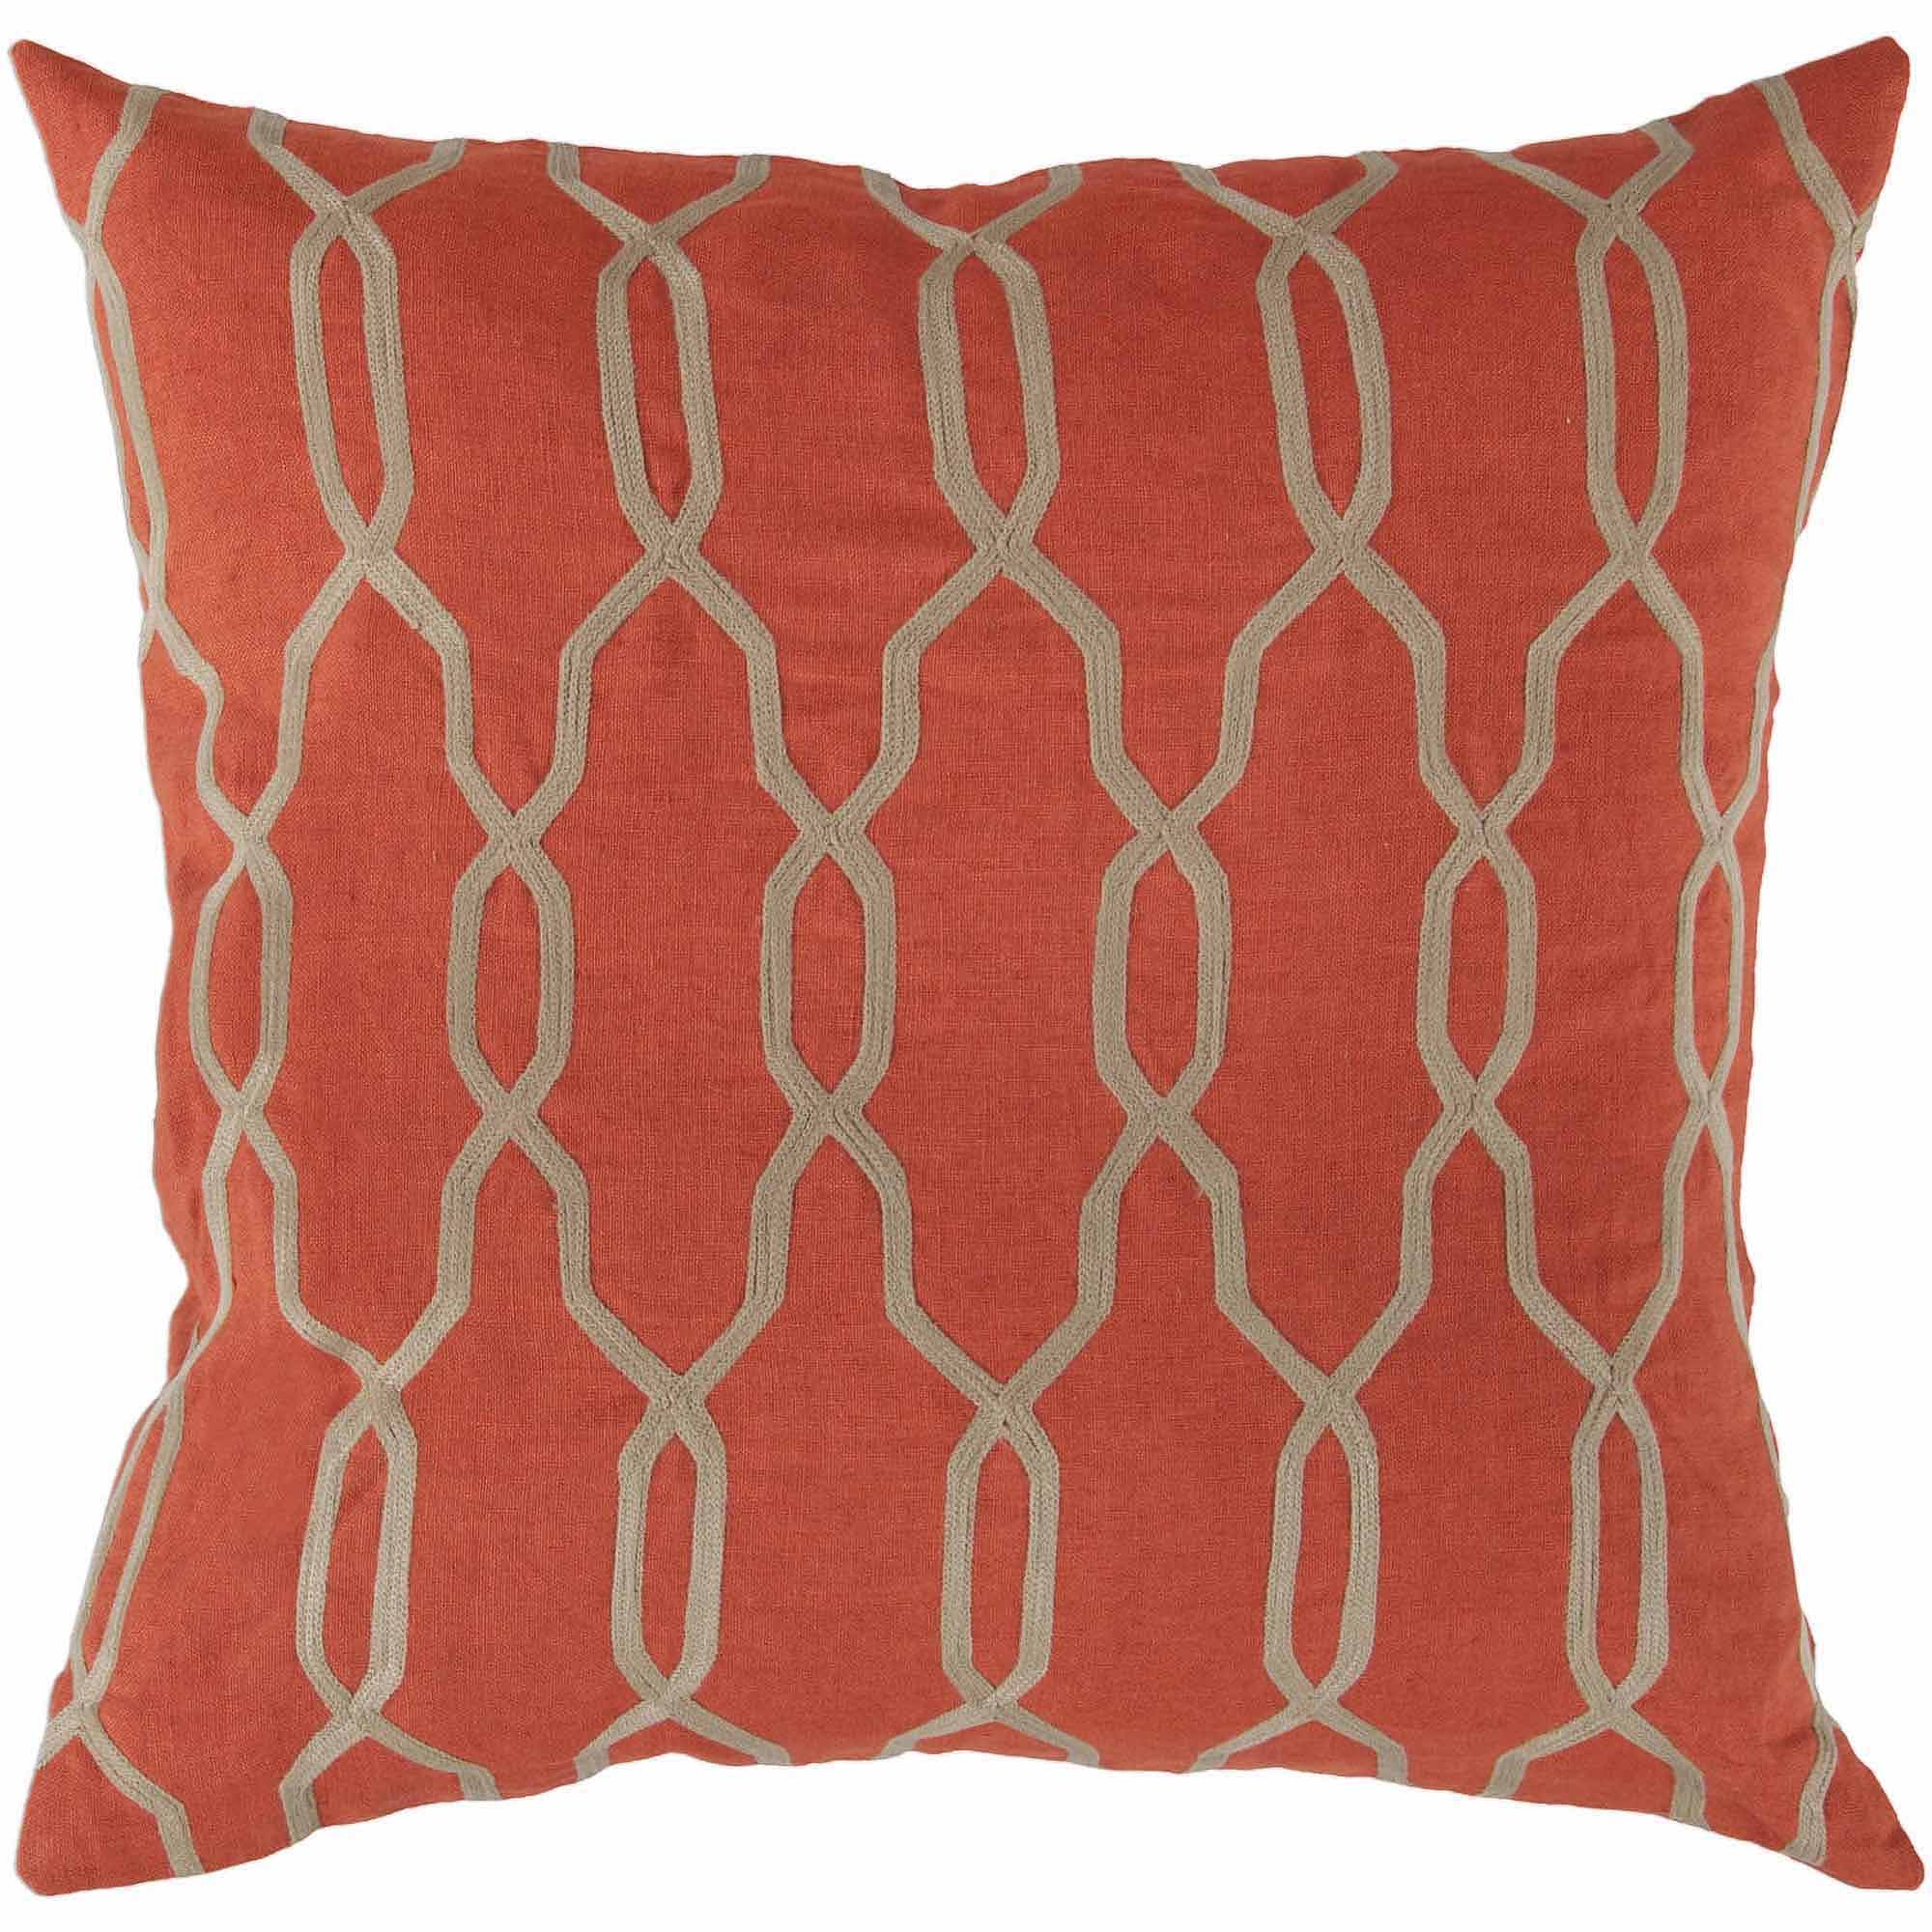 Art of Knot Amherst Hand Crafted Geometric Lattice Linen Decorative Pillow with Poly Filler, Poppy